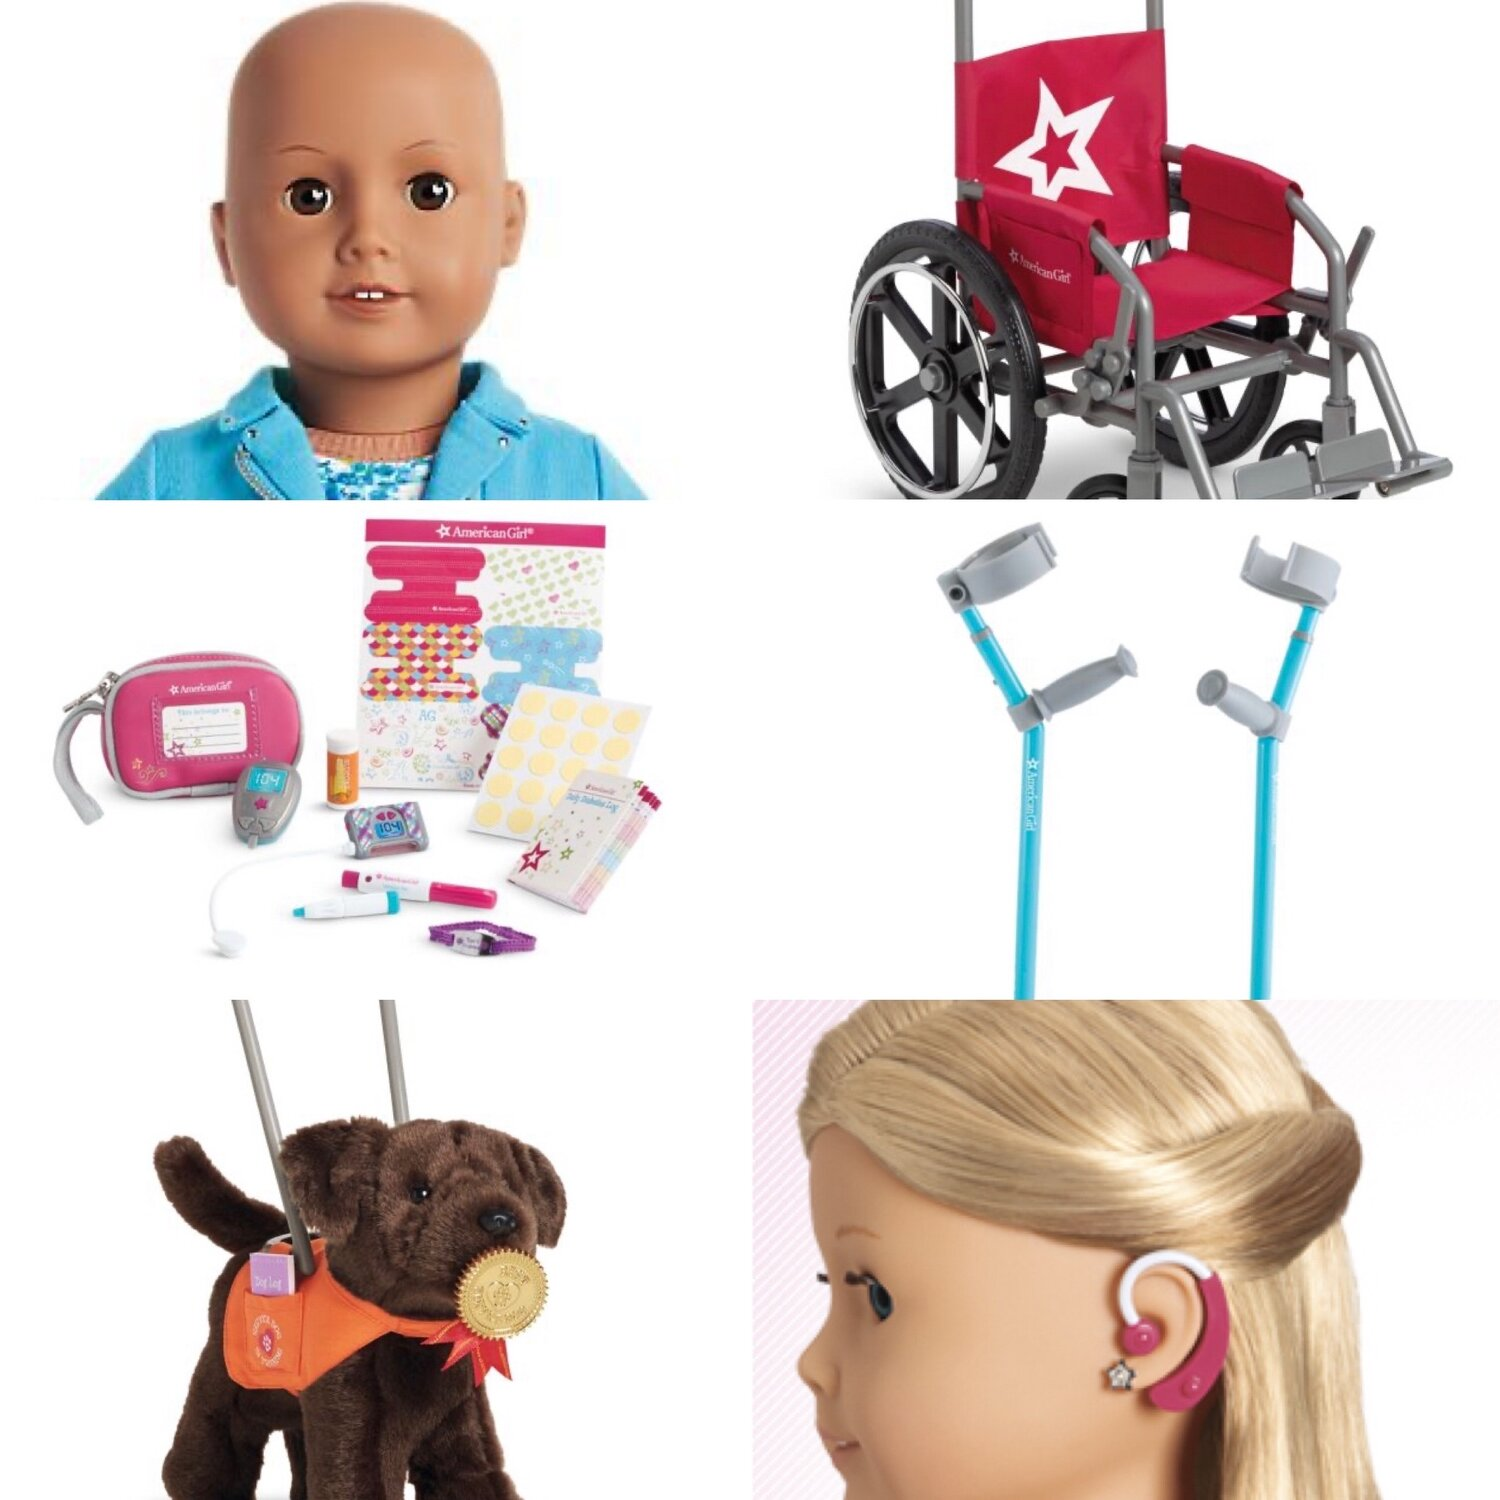 [Image Description: Six Images. From Top Left to bottom right: American Girl Doll with no hair. Doll wheelchair. Diabetes kit for dolls. Arm crutches for dolls. Service dog with vest. Doll with hearing aid.]